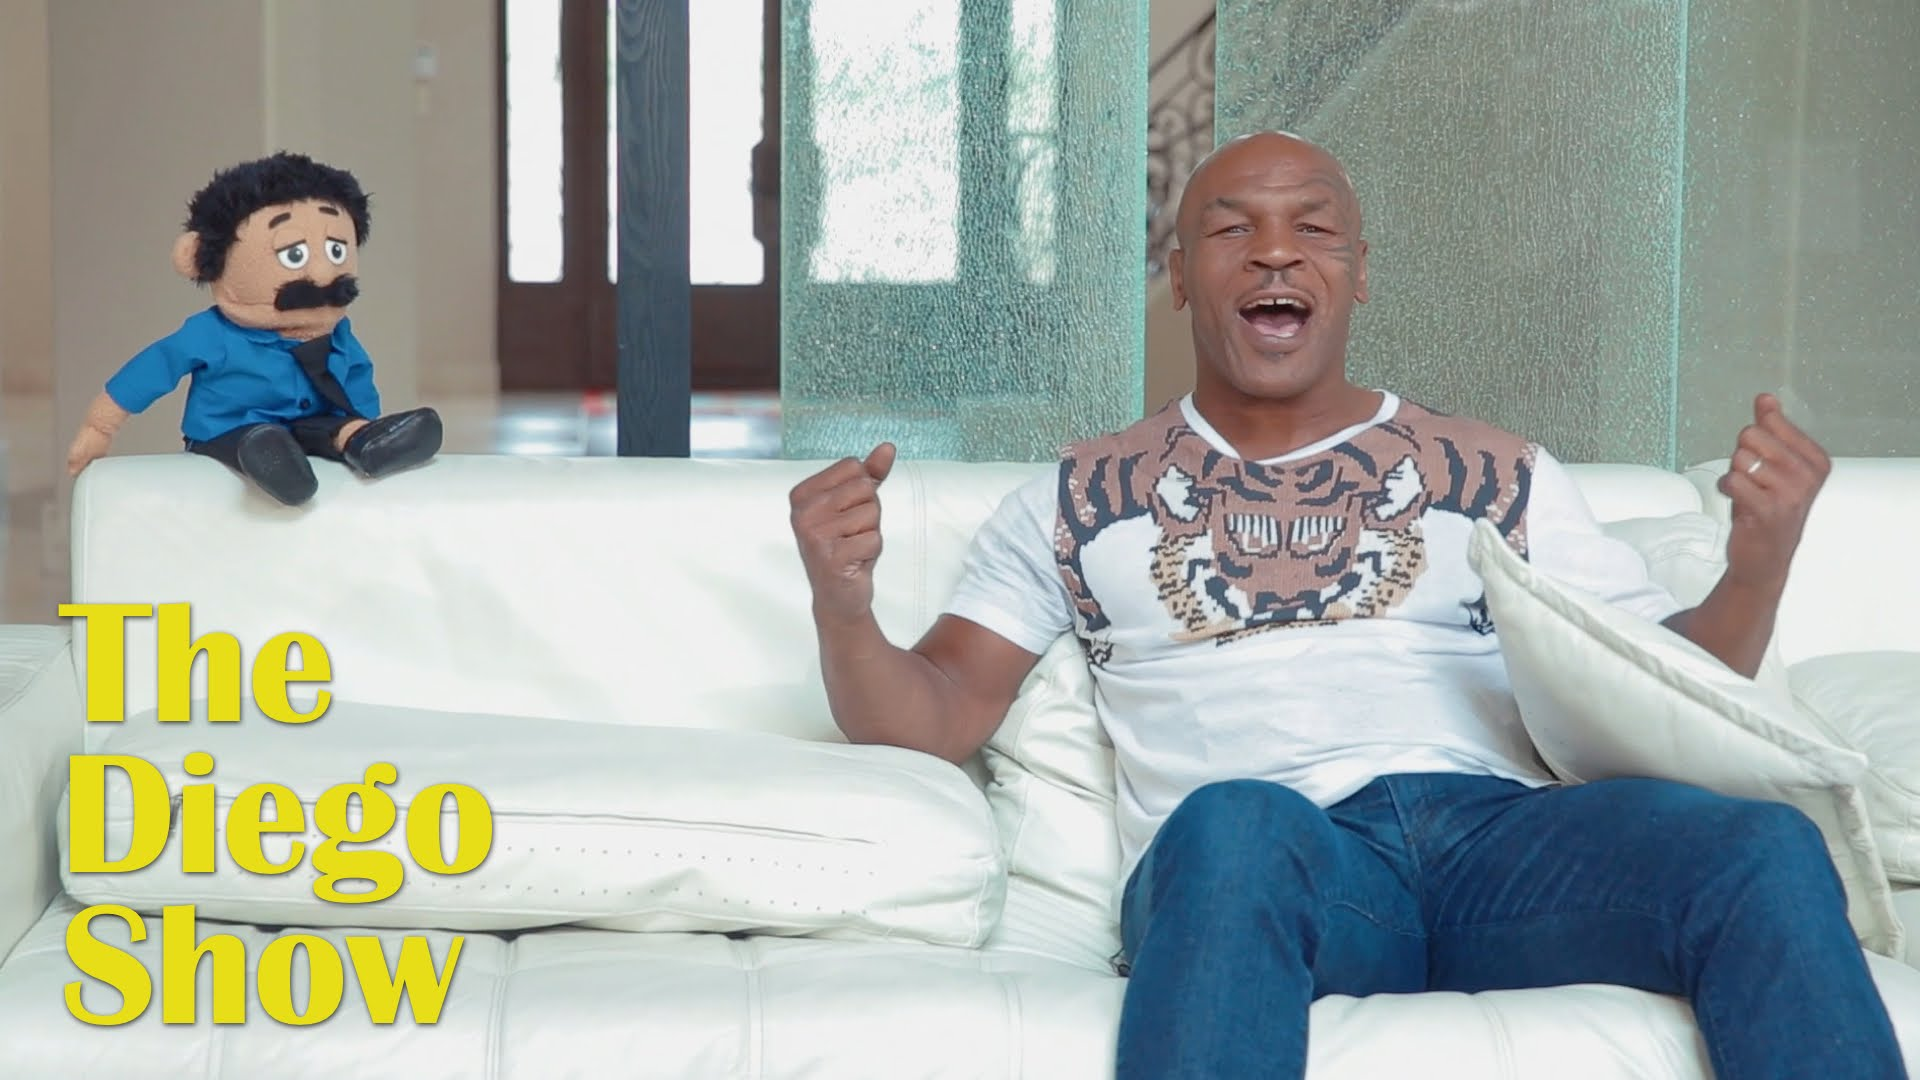 Mike Tyson's hilarious interview with Awkward Puppets